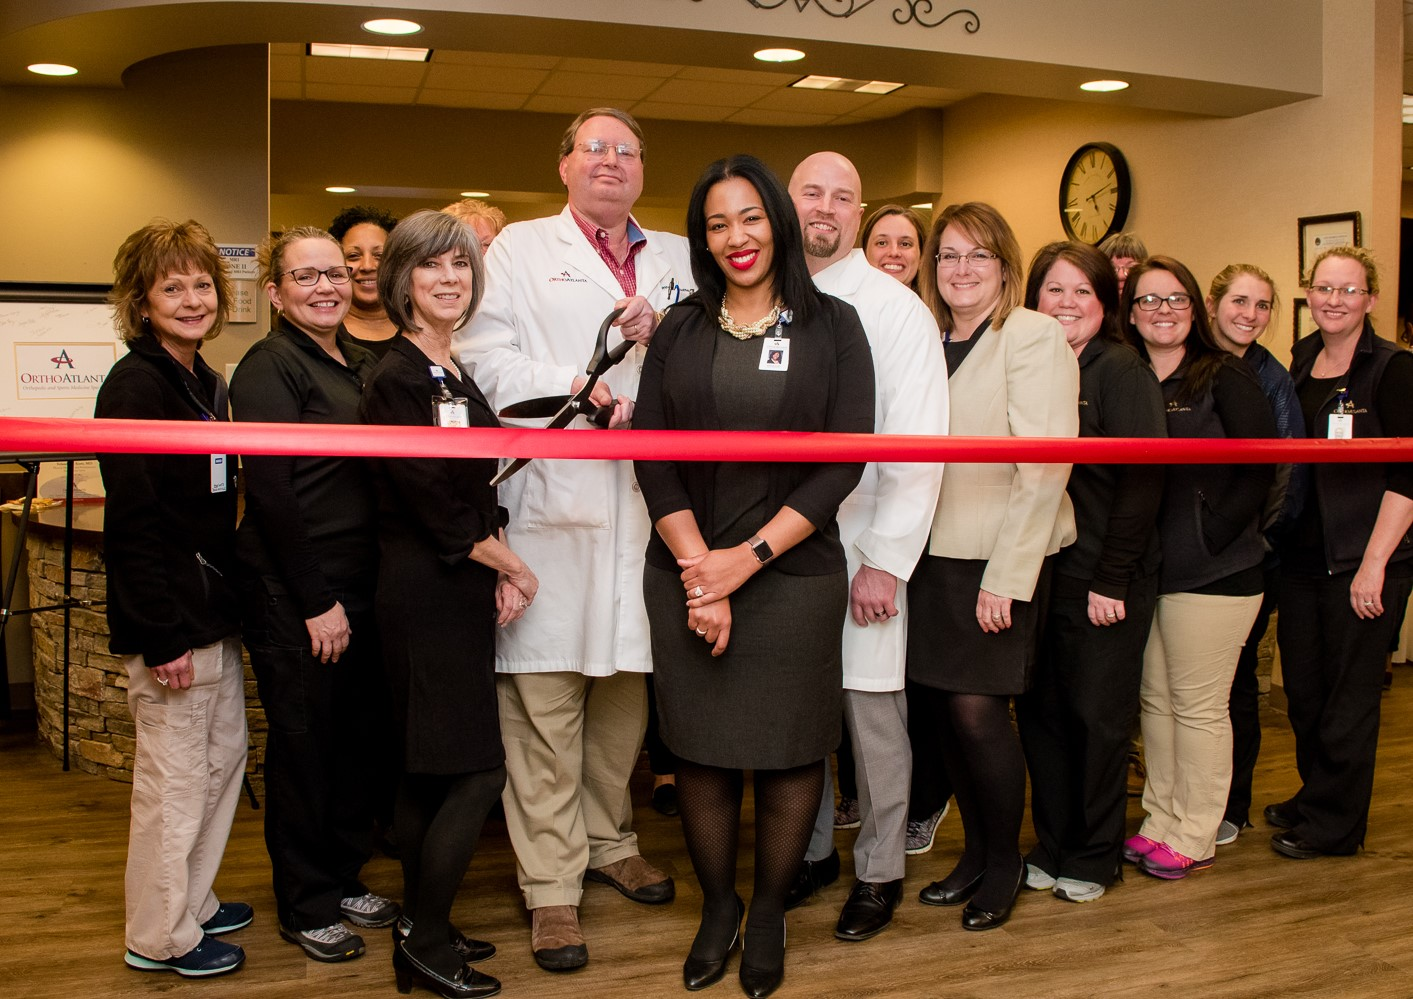 OrthoAtlanta physicians, Dr. Matthew Jaffe, Dr. Yolanda Scott and Dr. Christopher Burket and staff ribbon-cutting commemorates the remodel of the OrthoAtlanta Douglasville office.